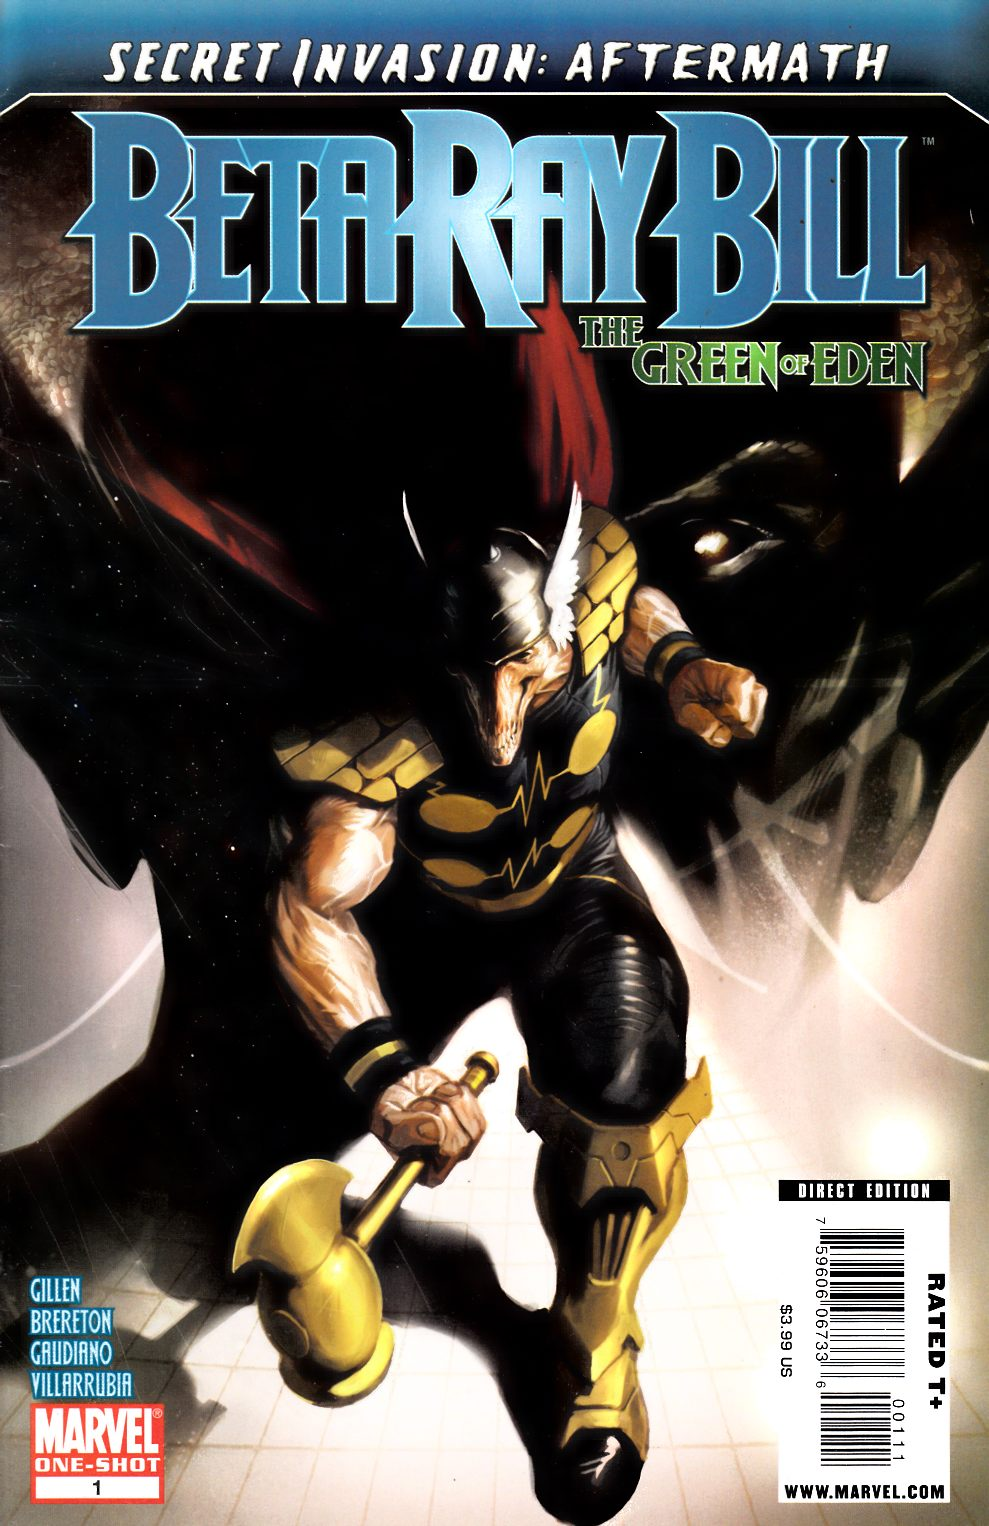 Secret Invasion Aftermath Beta Ray Bill Green of Eden #1 Fine (6.0) [Marvel Comic] THUMBNAIL